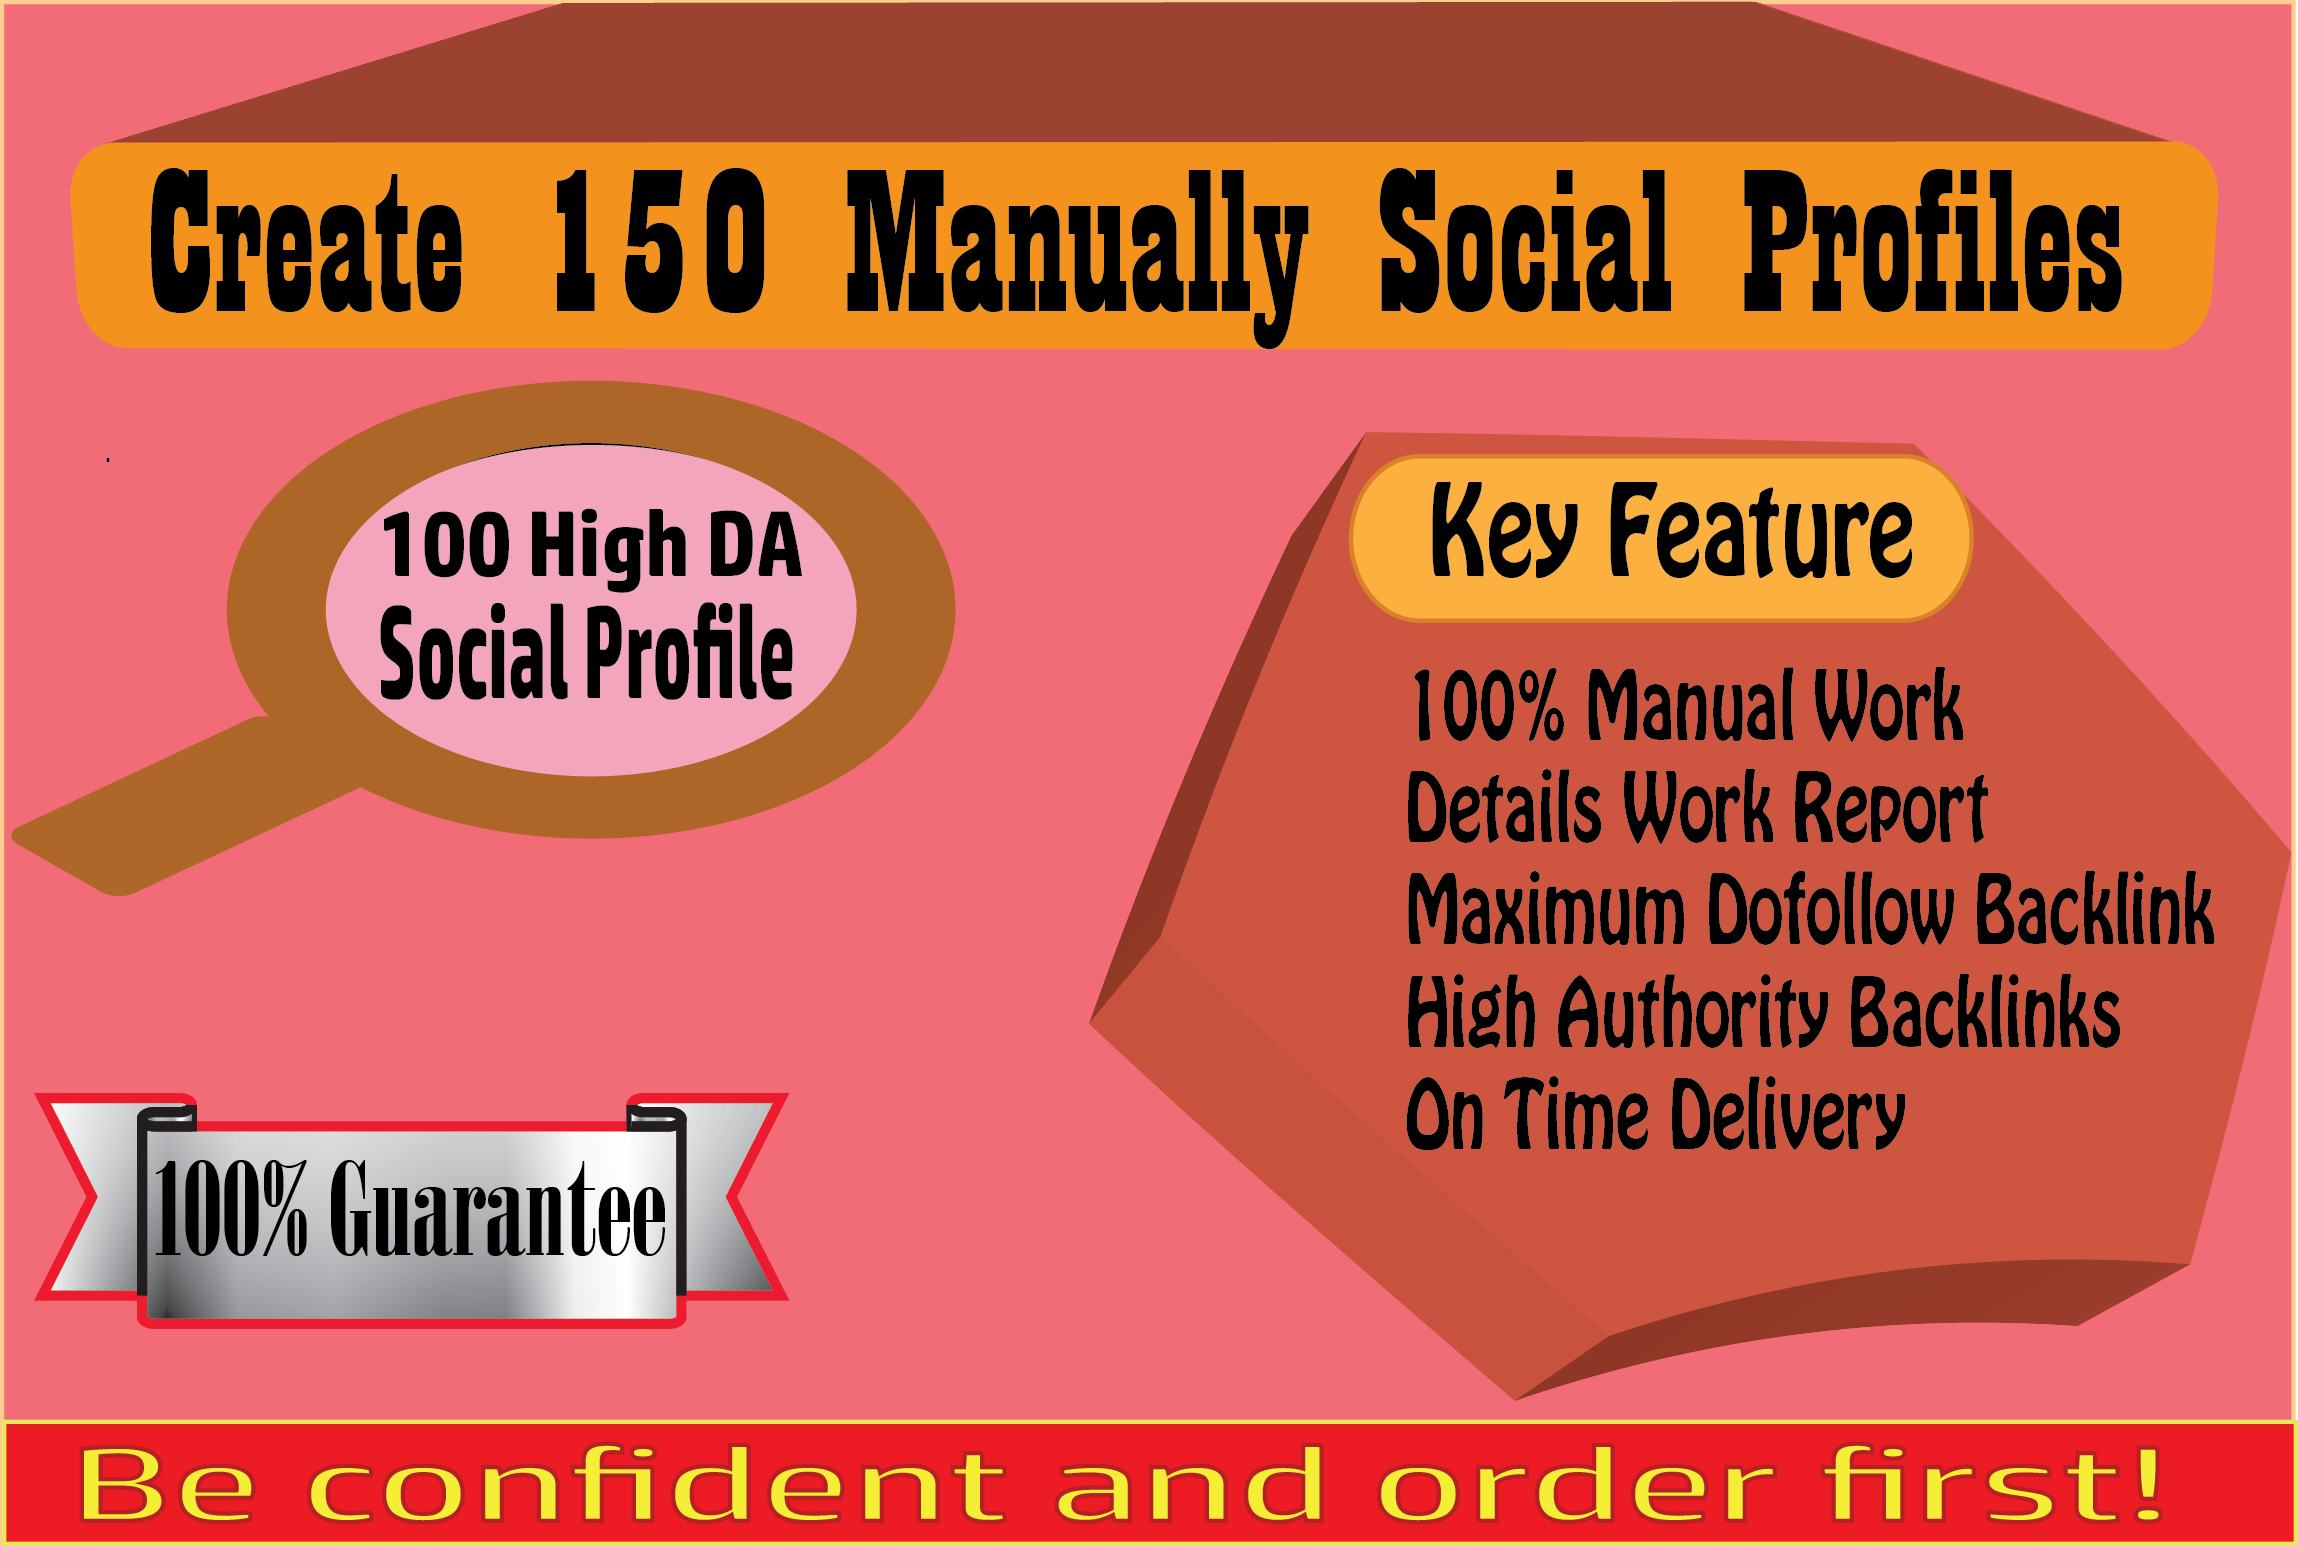 I Will Create 150 Manually Social Profiles